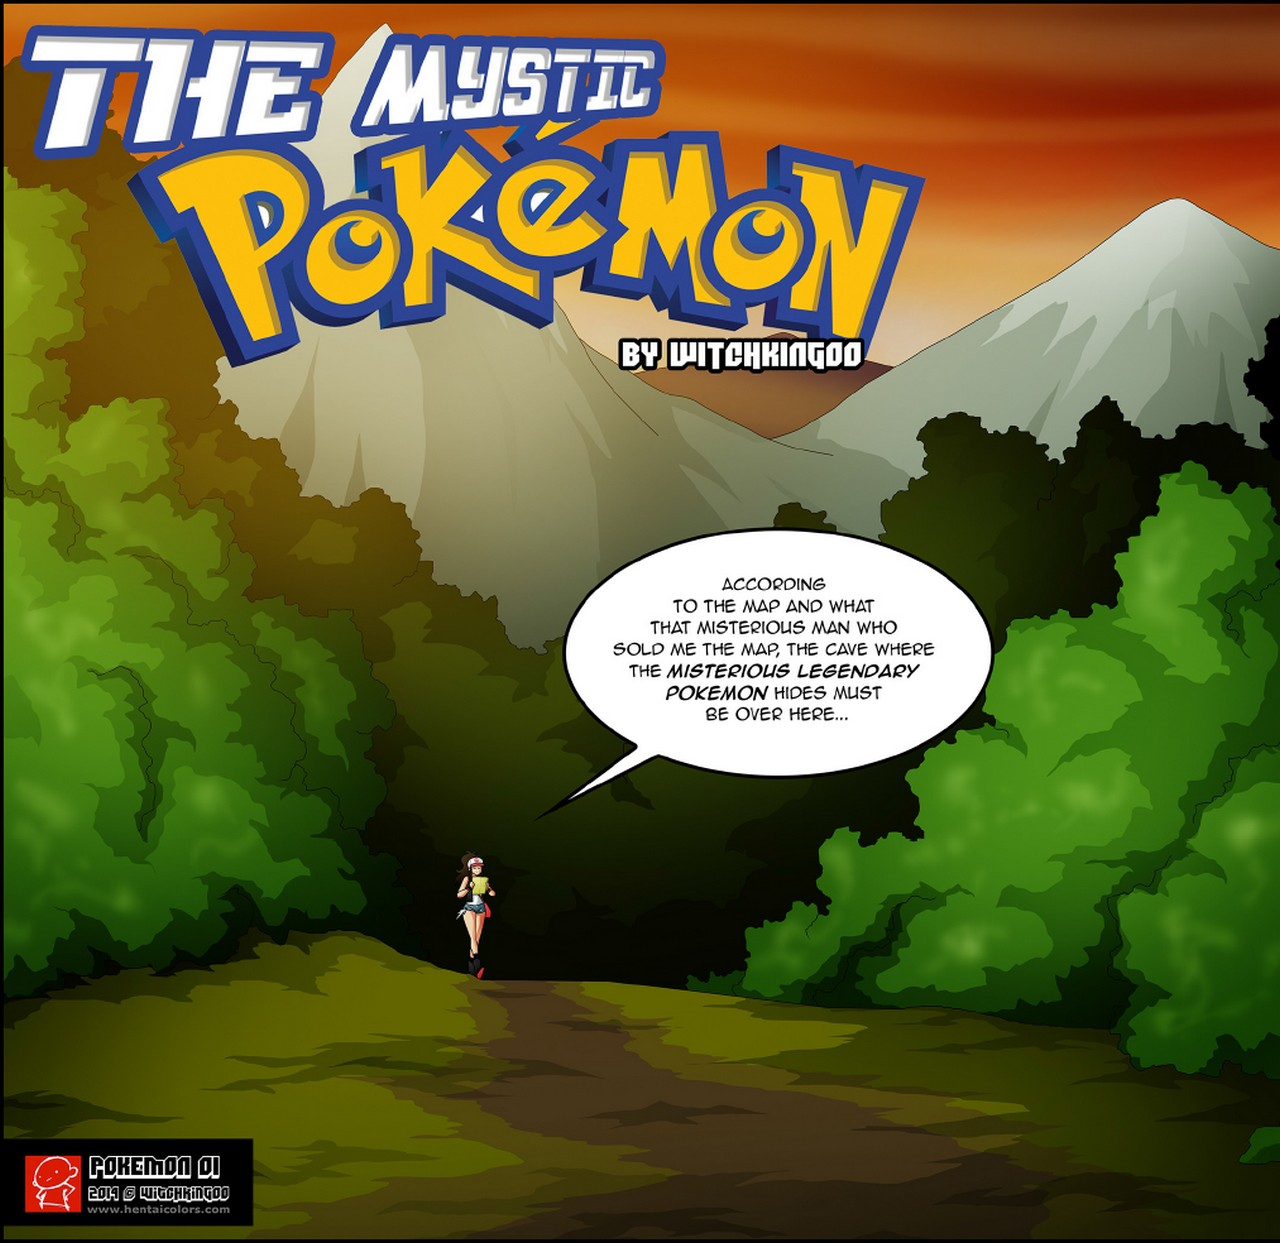 The Mystic Pokemon